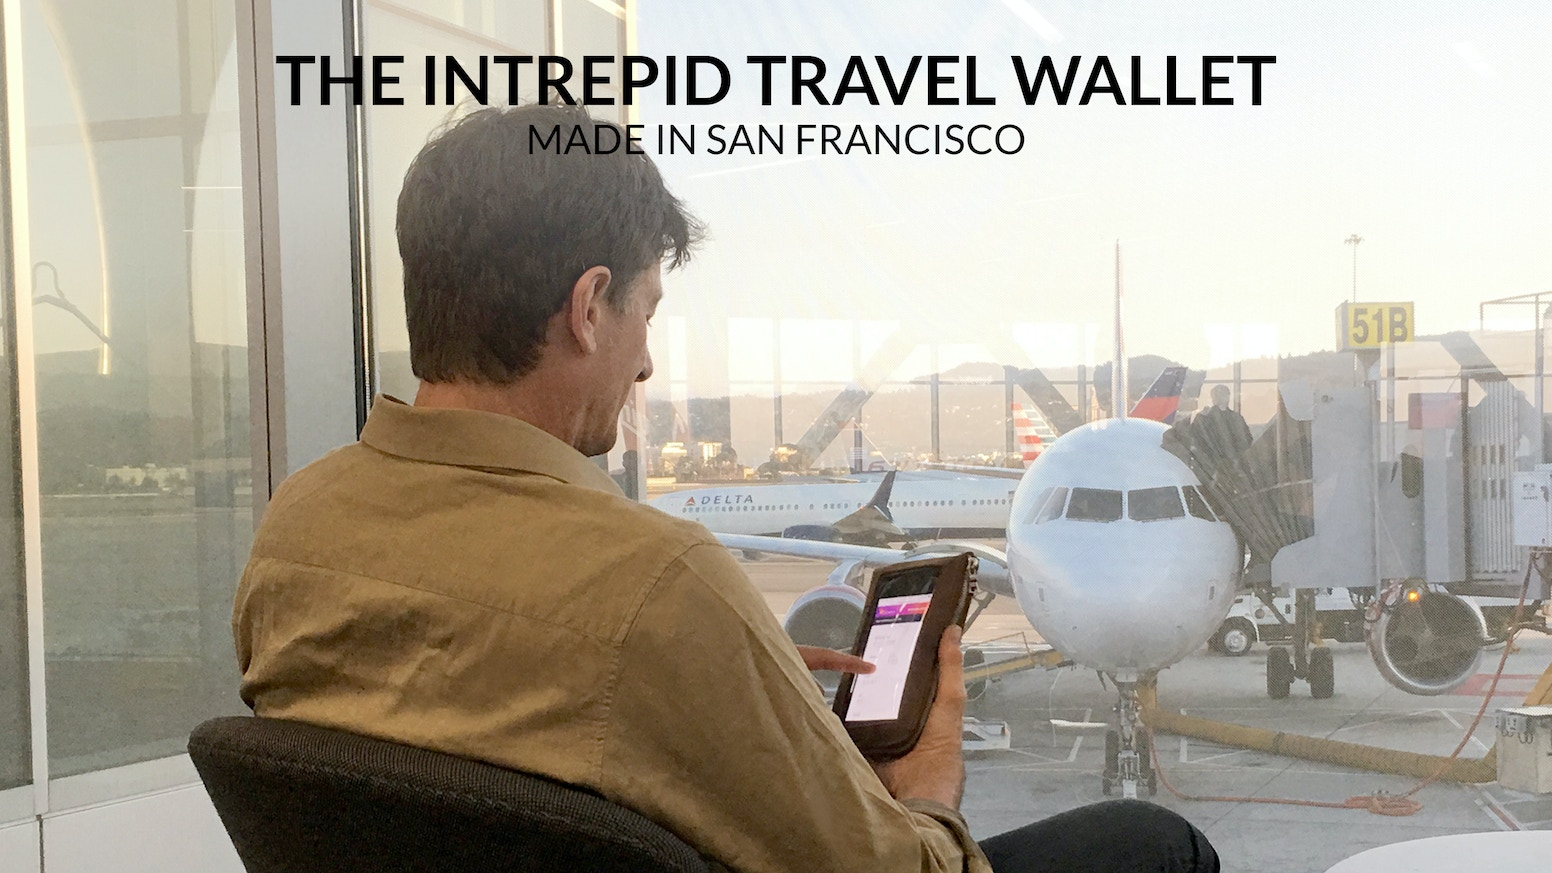 A WaterField (SFbags) play-through RFID-blocking travel wallet and iPhone case. Holds phone, passport, cash, credit cards, & more.